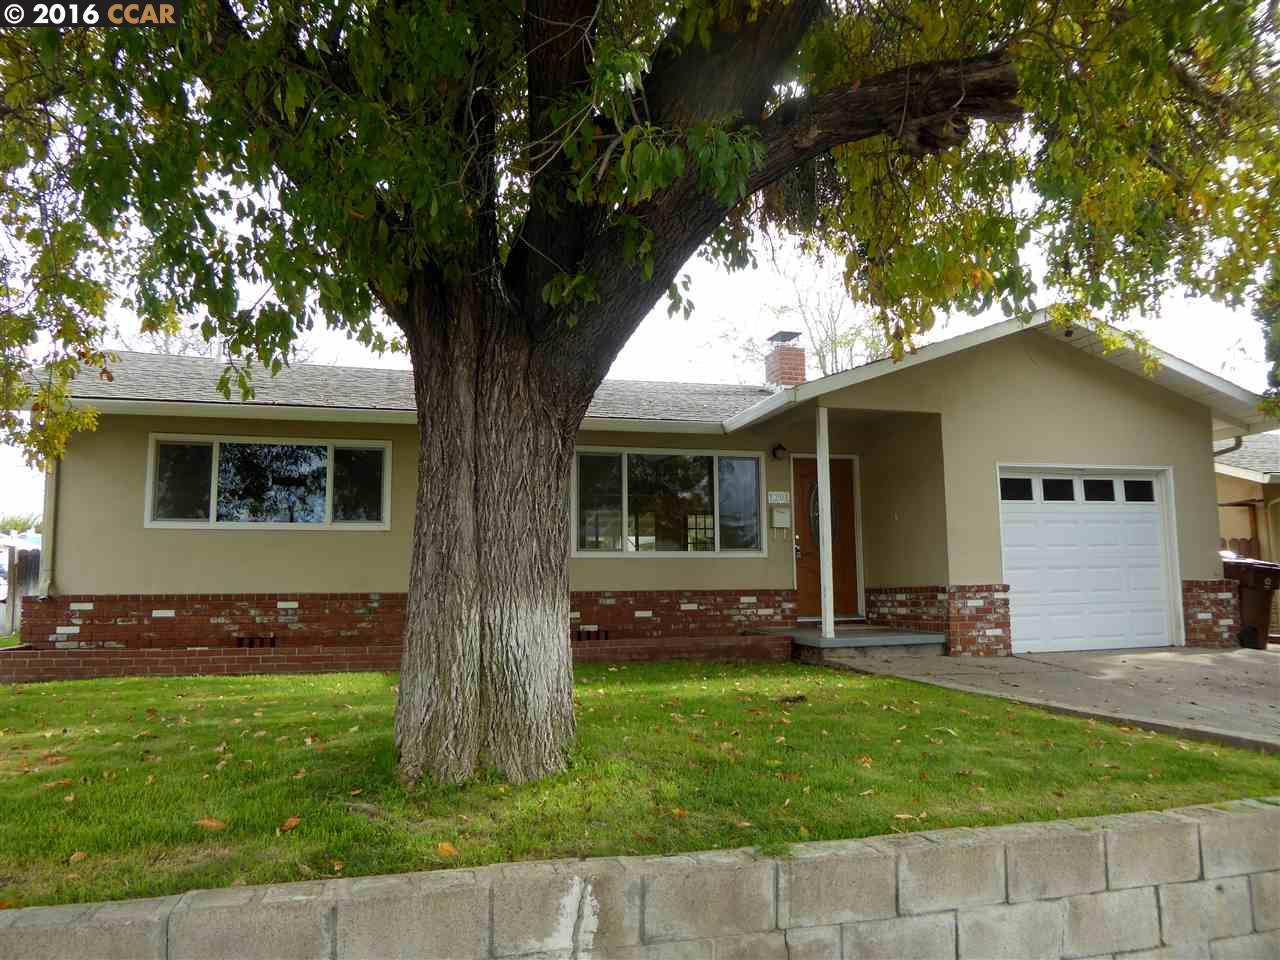 Single Family Home for Sale at 1201 Miller Street Antioch, California 94509 United States